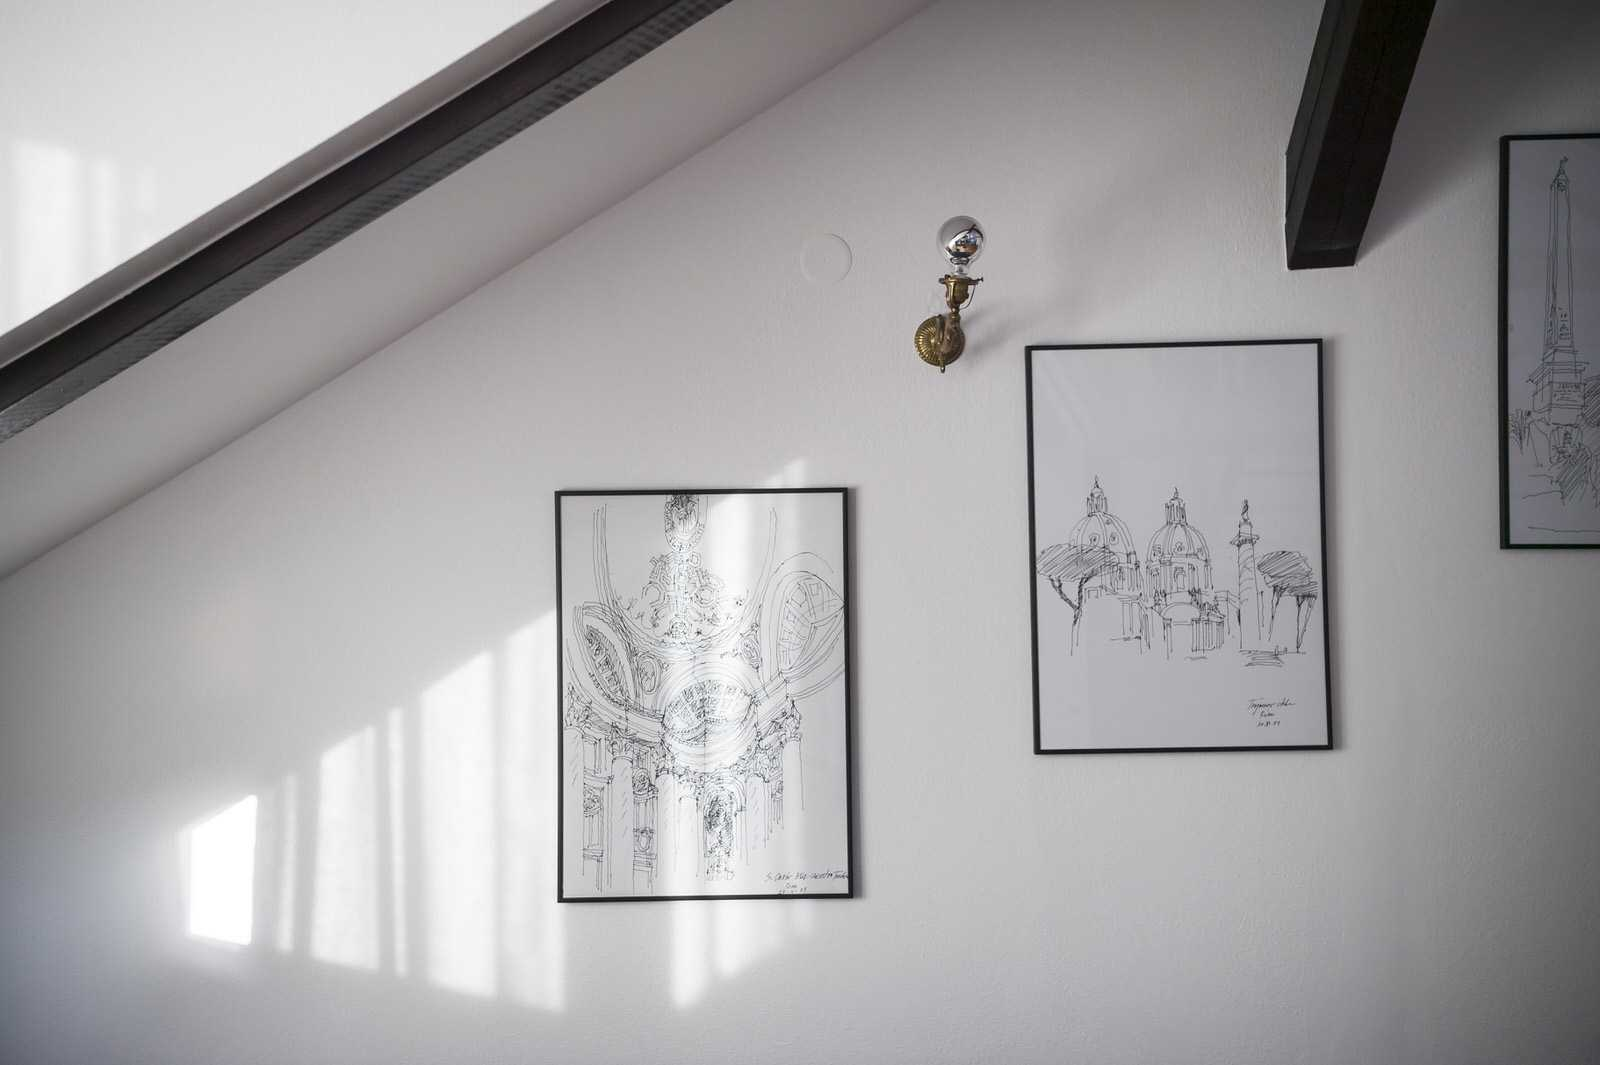 The walls are decorated with sketches of European capitals.